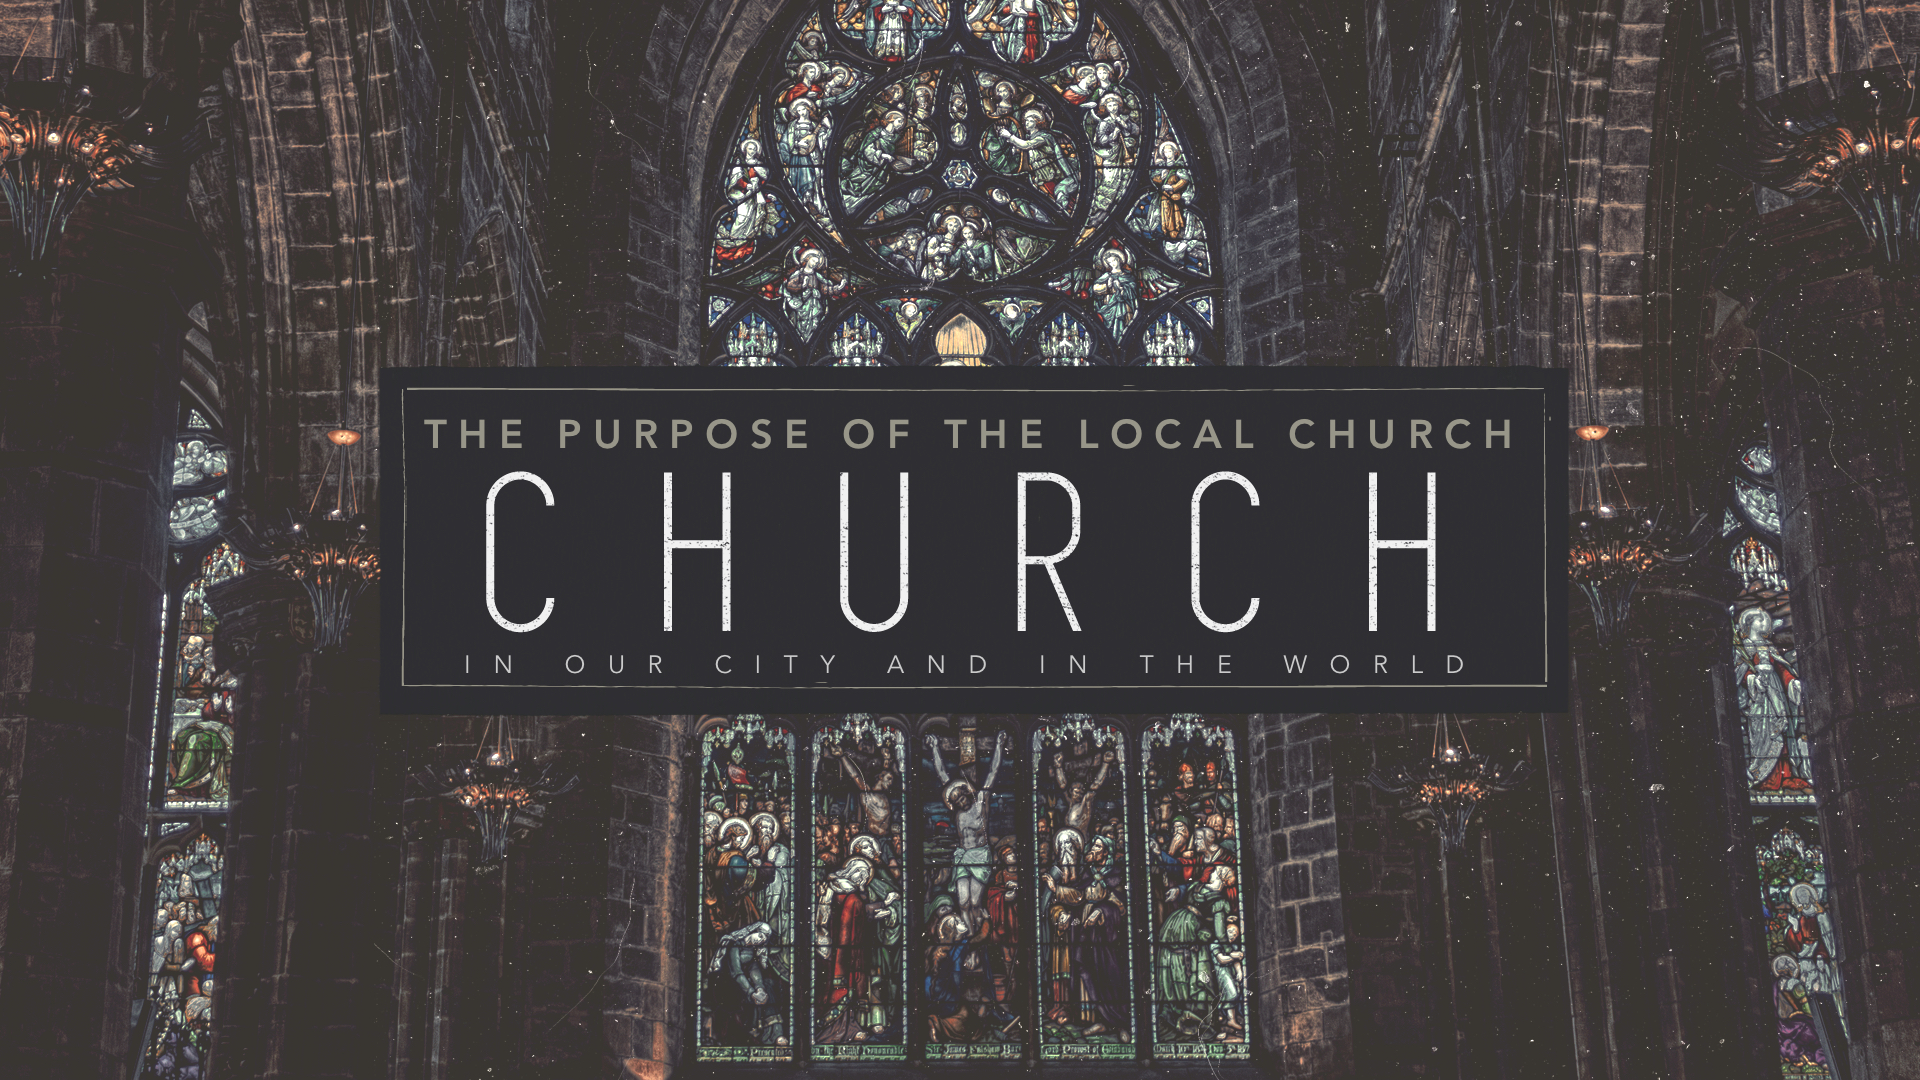 The Purpose of the Local Church